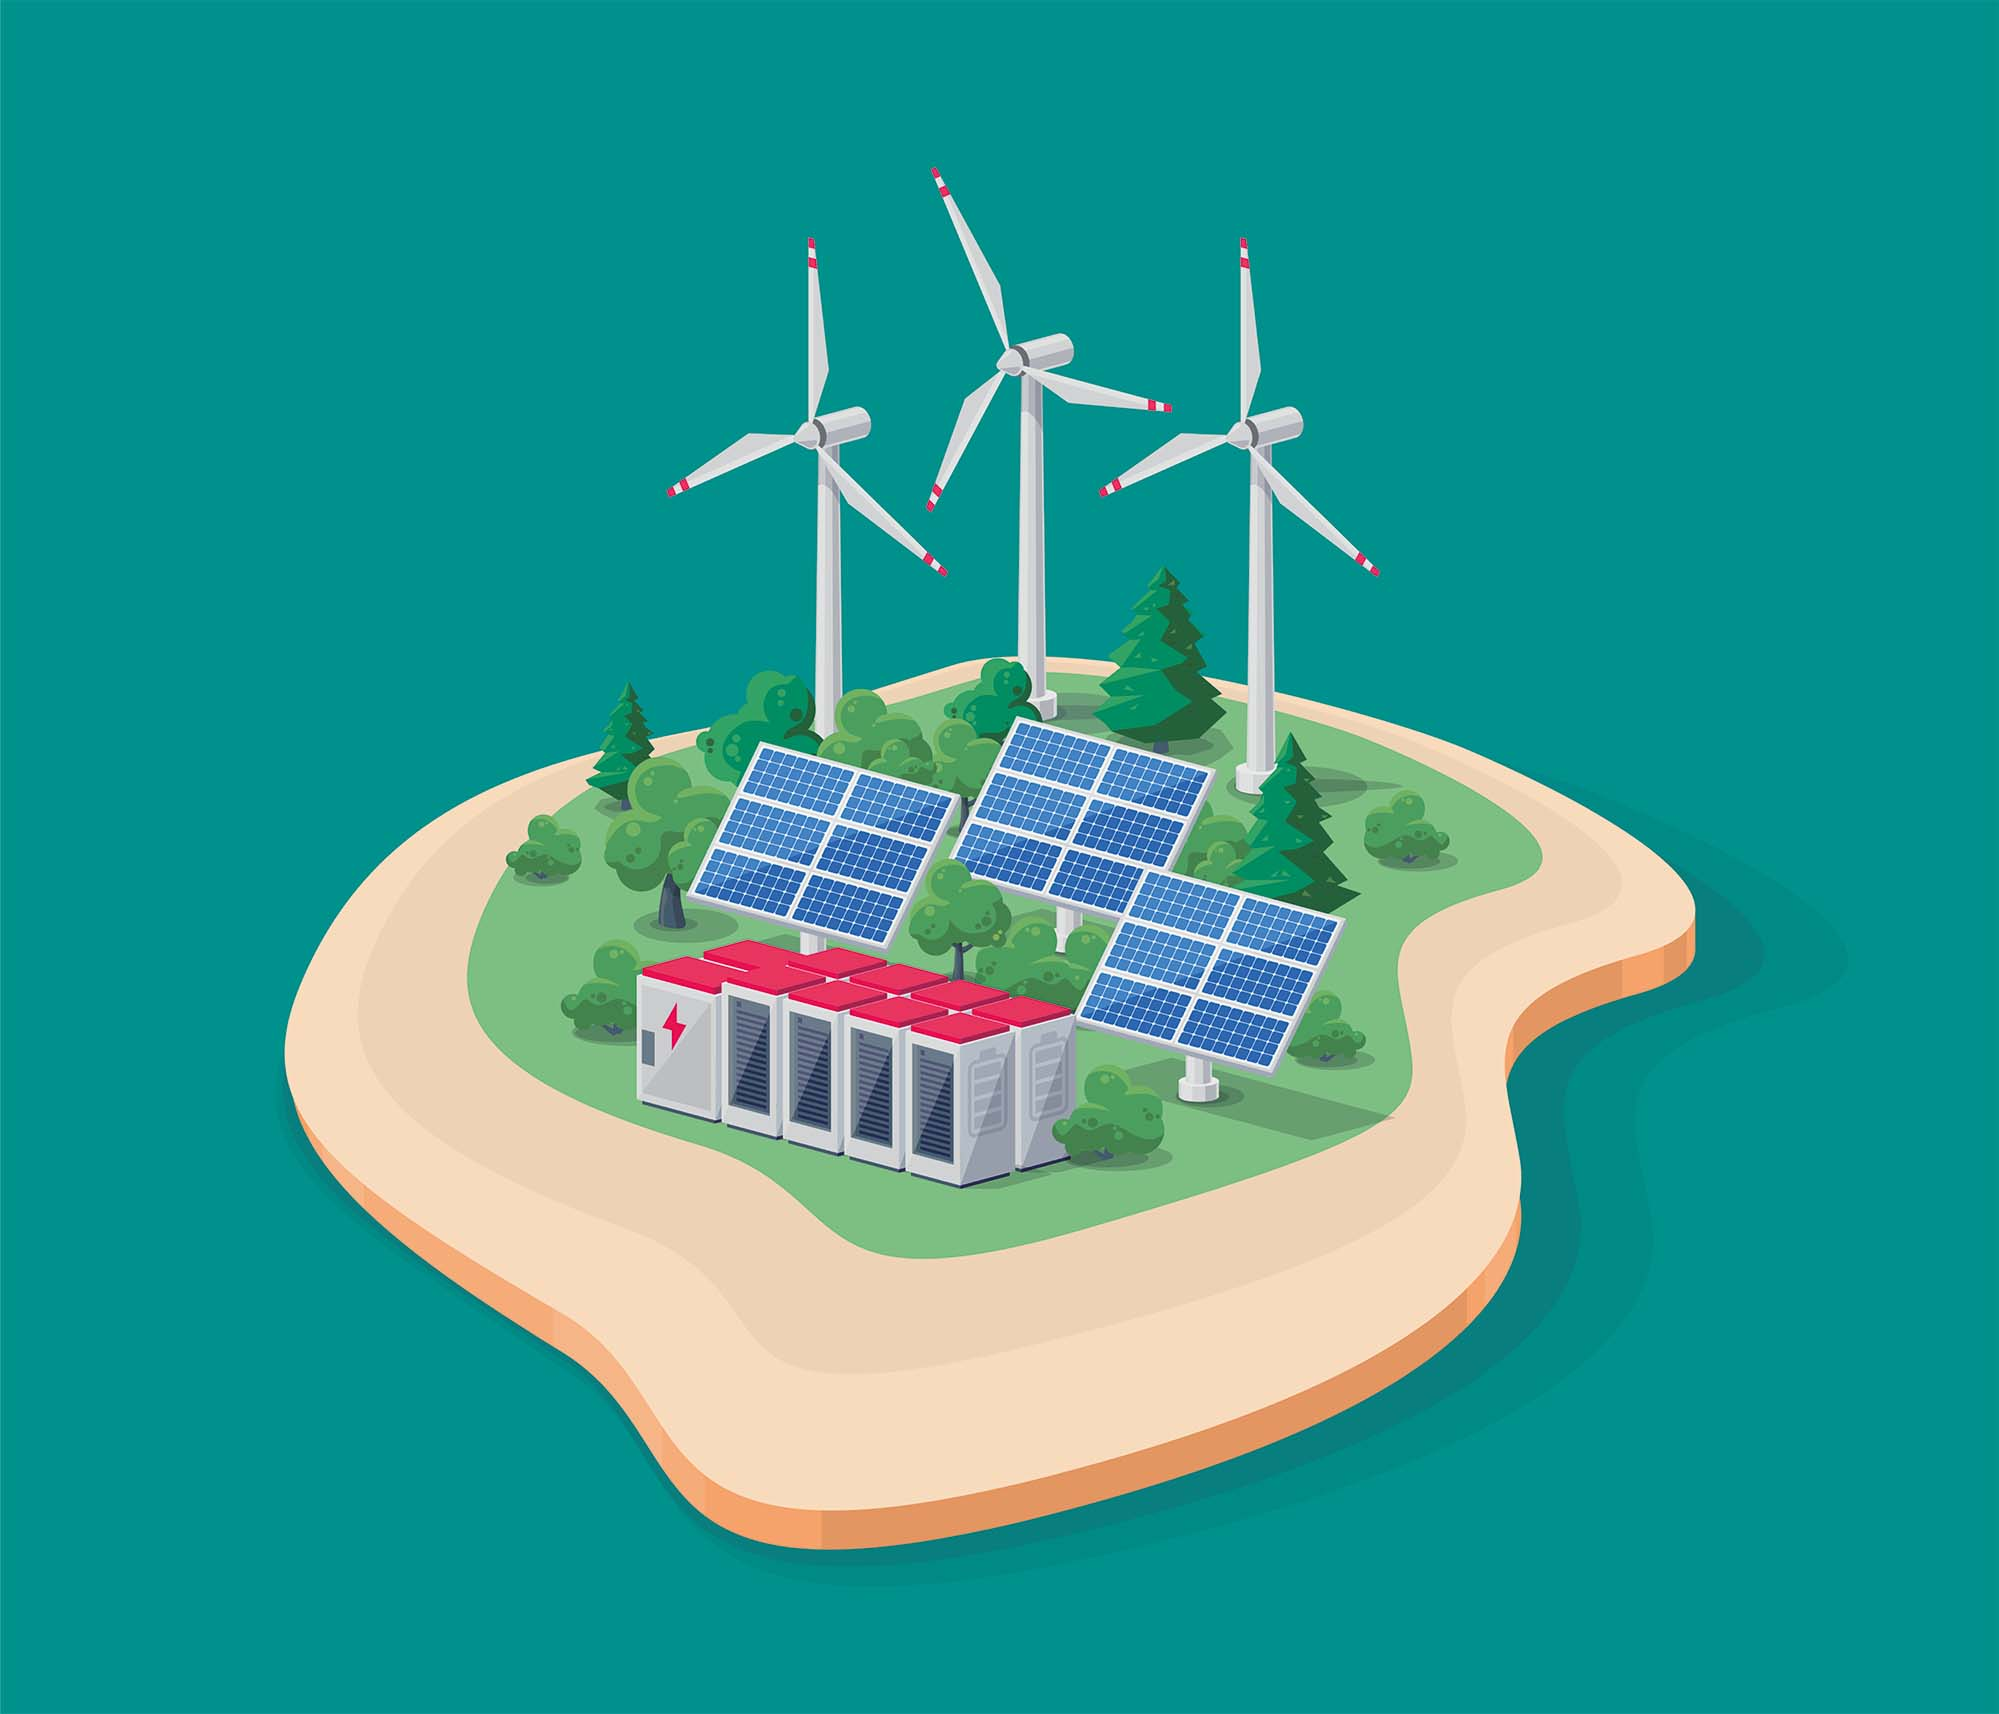 A microgrid produces, stores, distributes and uses power. Microgrids can be, for example, suitable for islands, where it is expensive and/or difficult to reach with cables from the mainland.